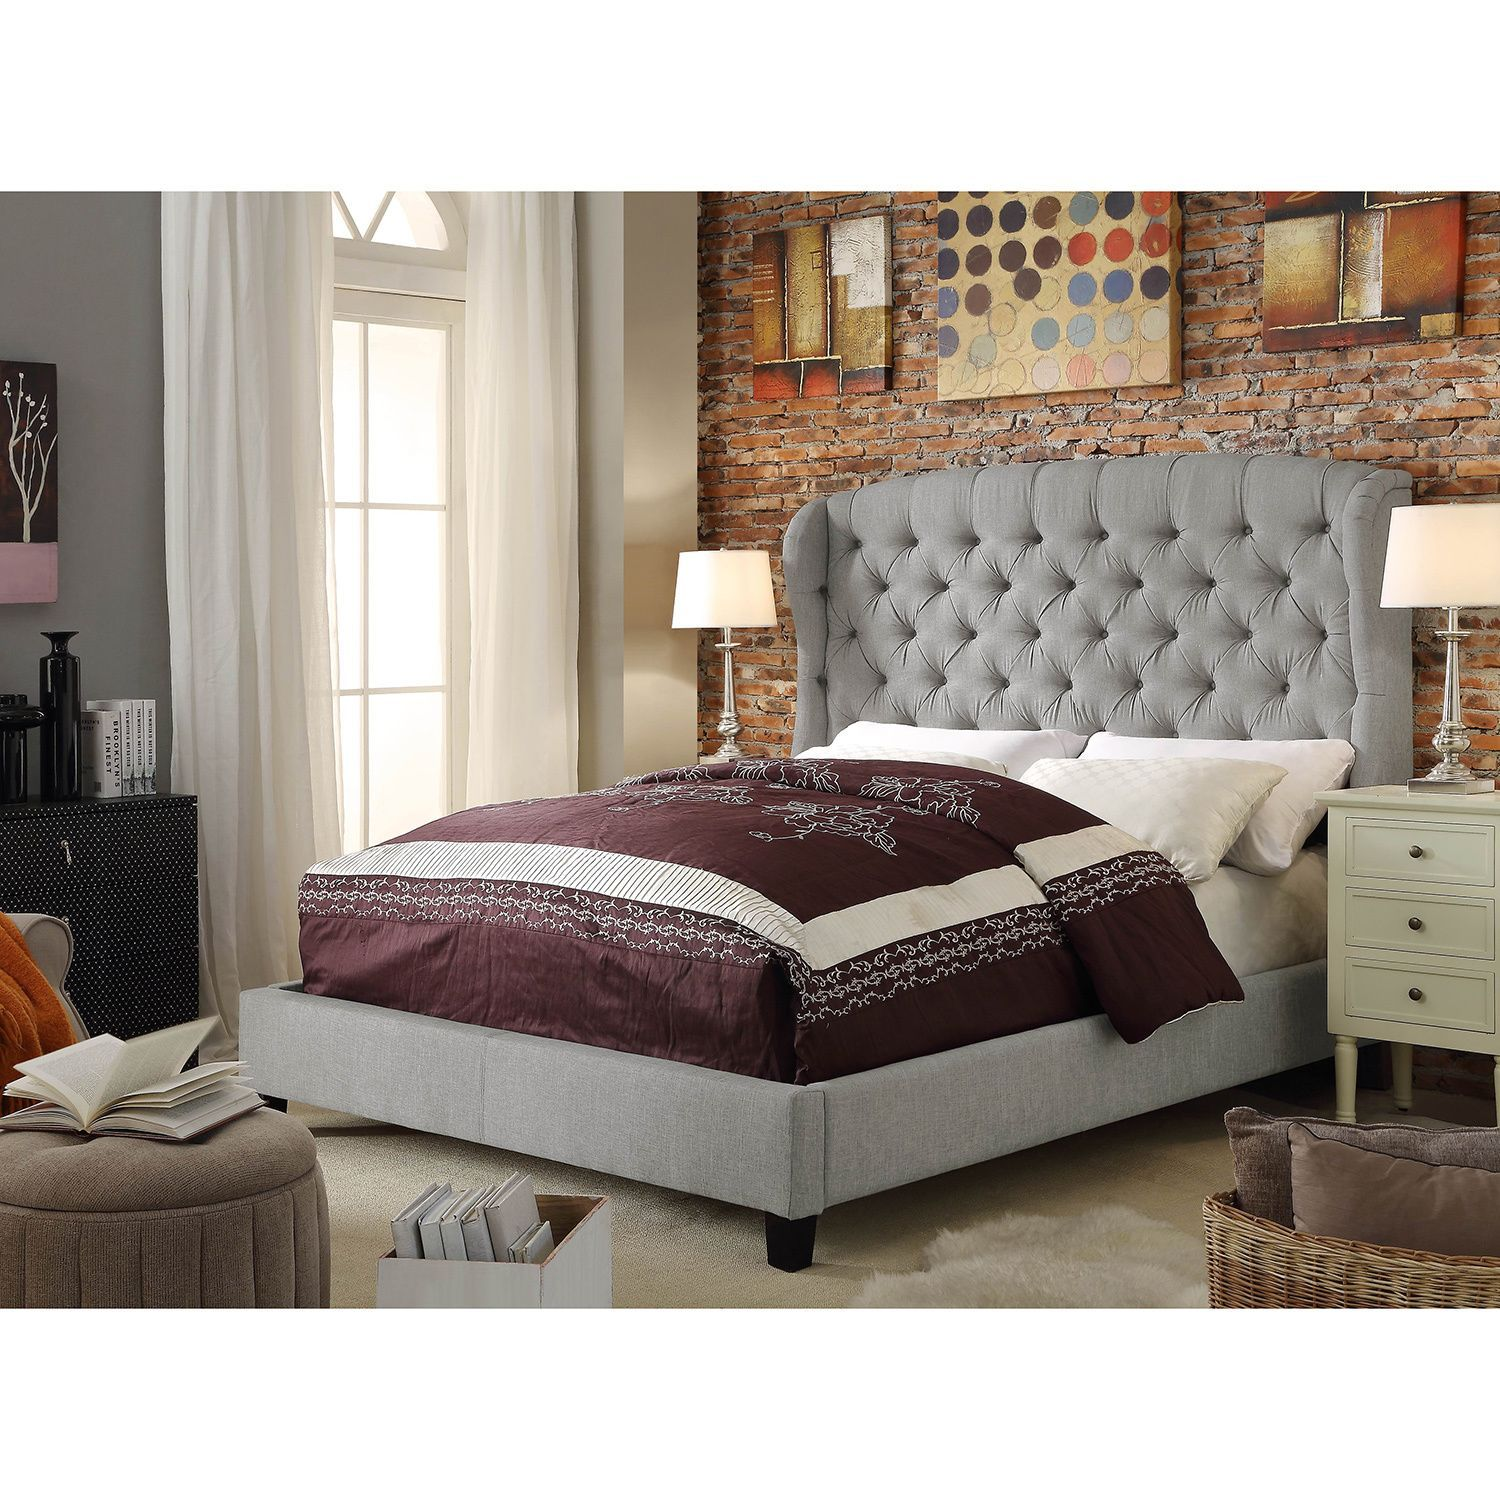 The perfect decor accent to your bedroom this gorgeous grey bed